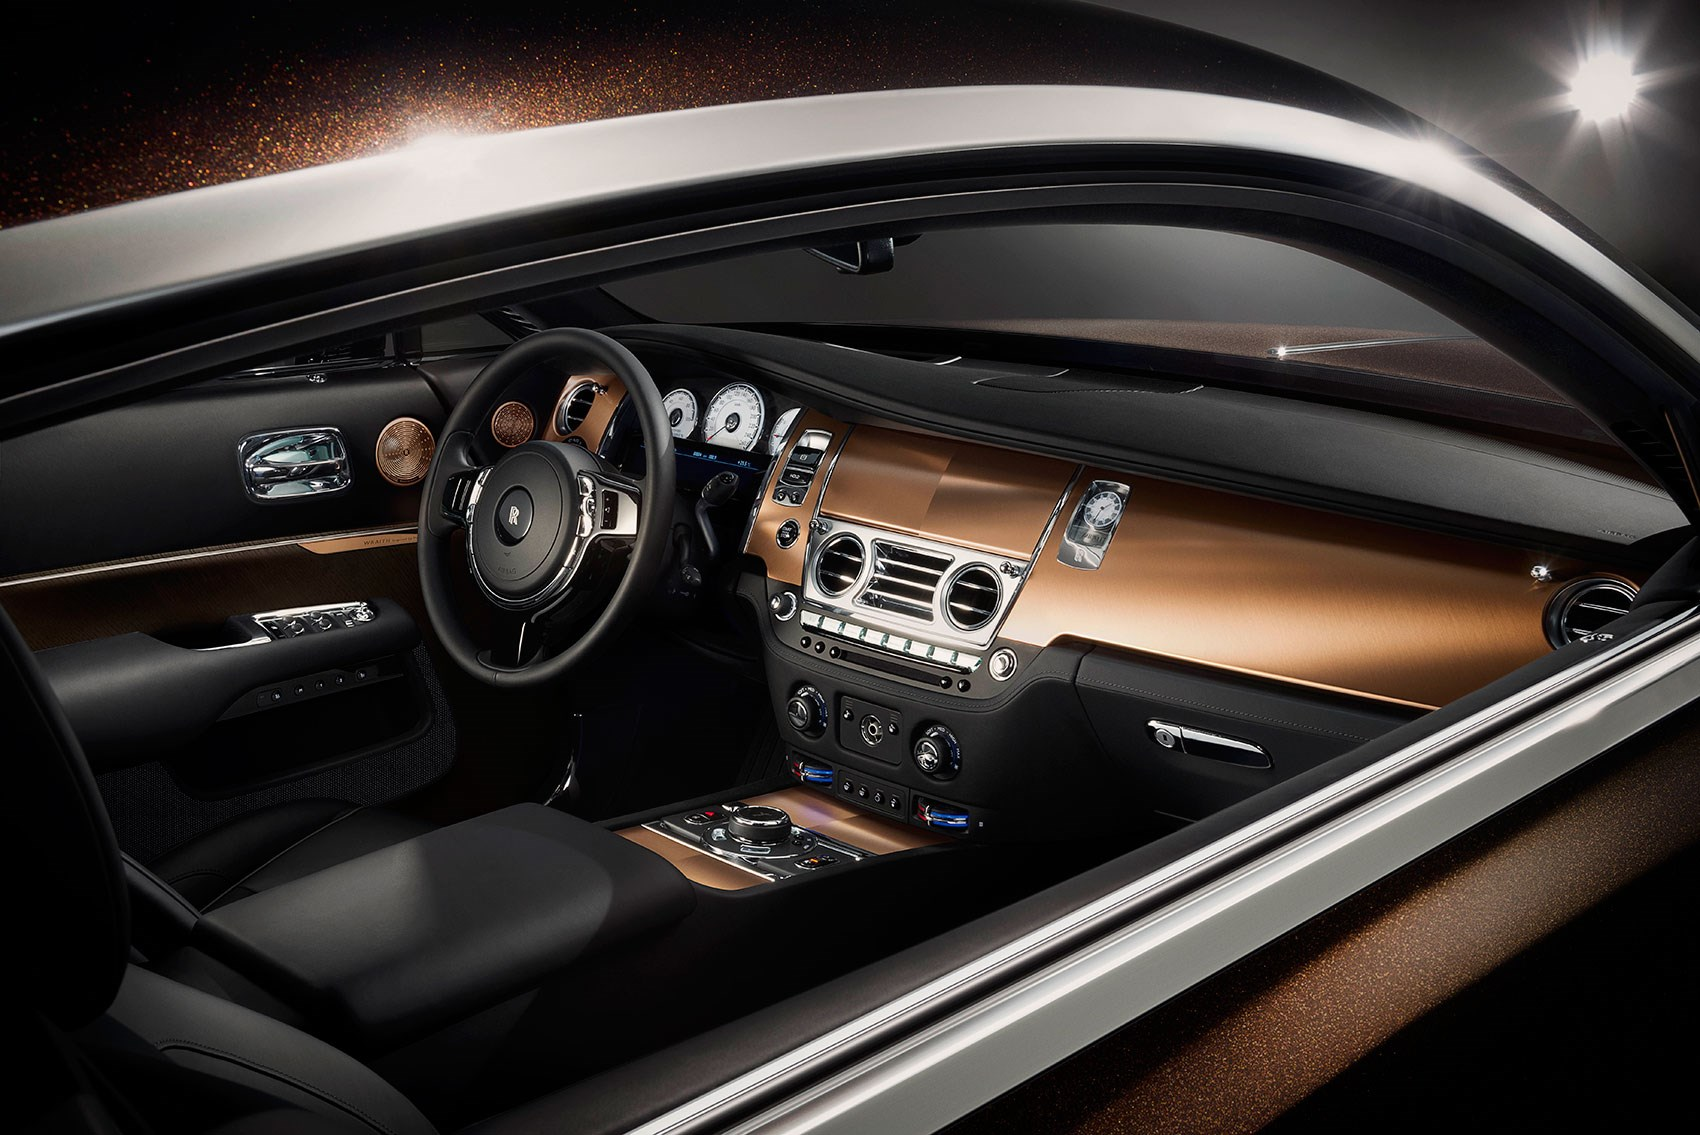 The Hi Fi Interior Of The Rolls Royce Wraith Inspired By Music